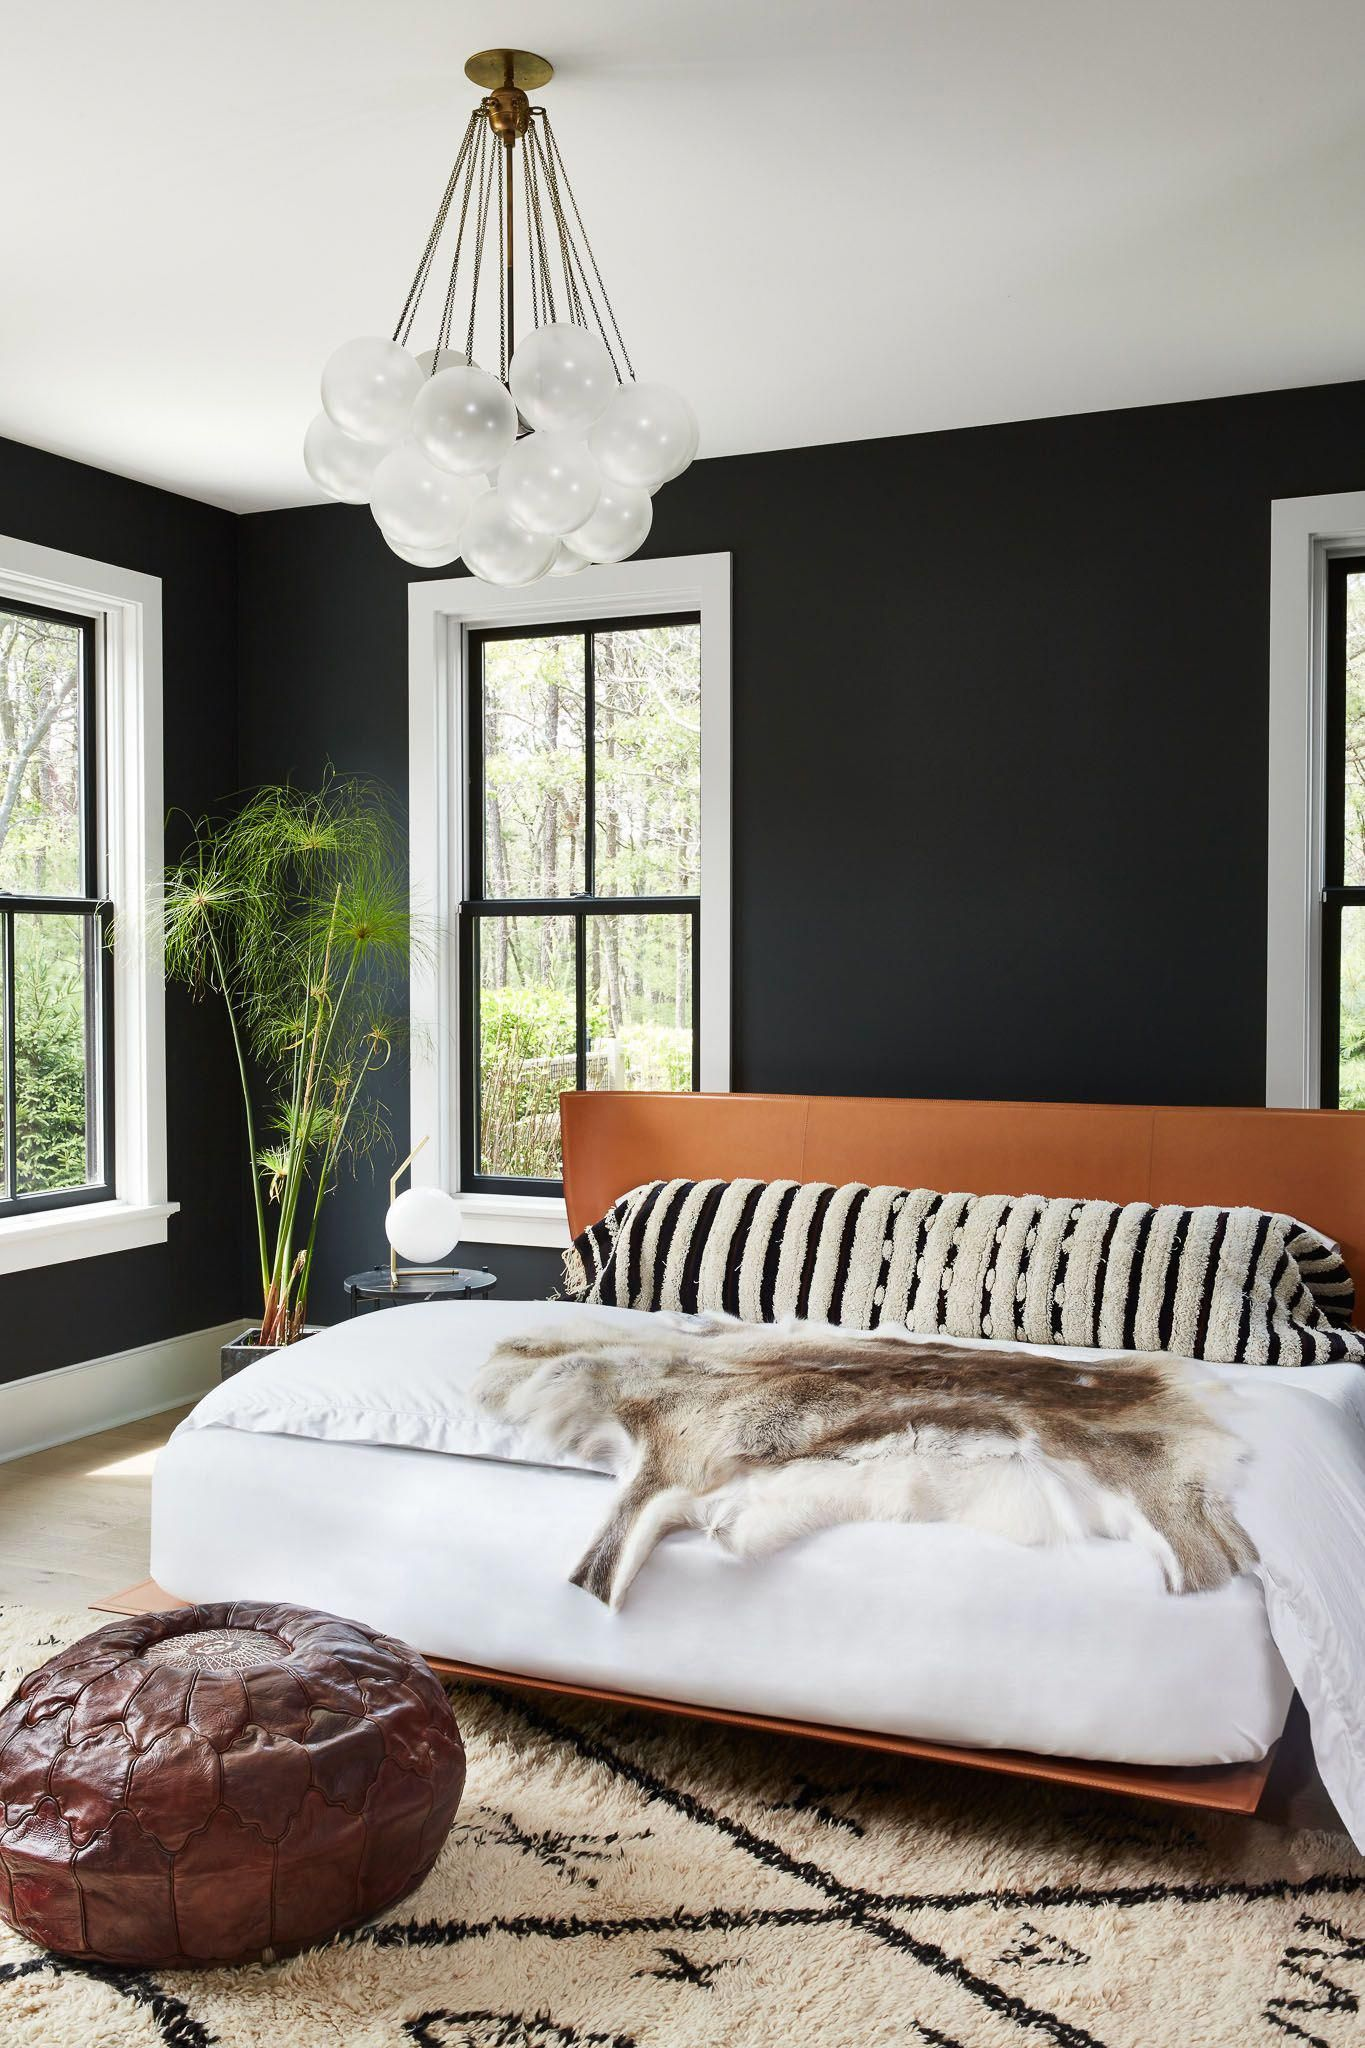 Bed under window  so often we think of design as a service a oneway road a designer